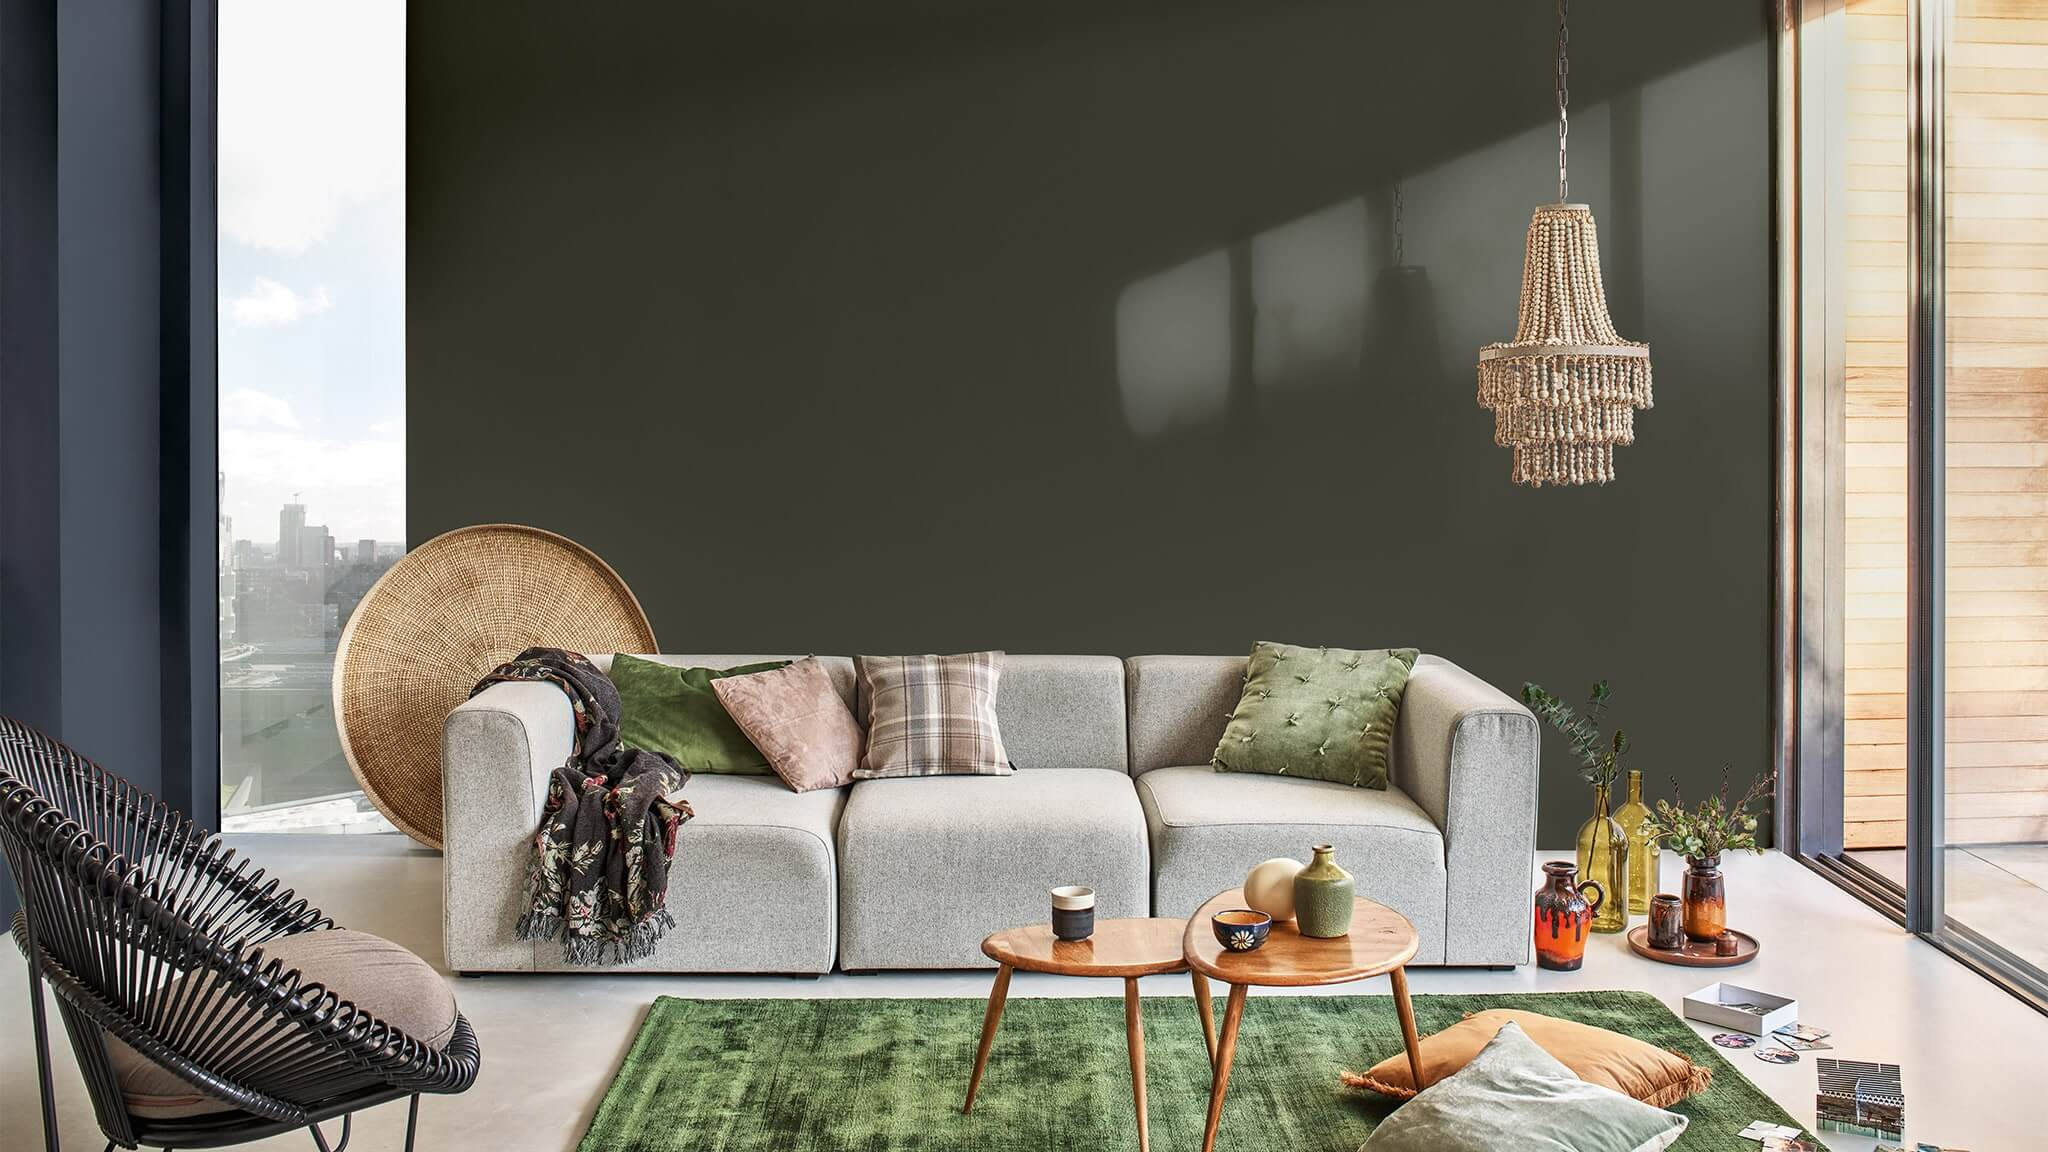 dulux-colour-futures-colour-of-the-year-2020-a-home-for-creativity-livingroom-inspiration-south-africa-4.jpg